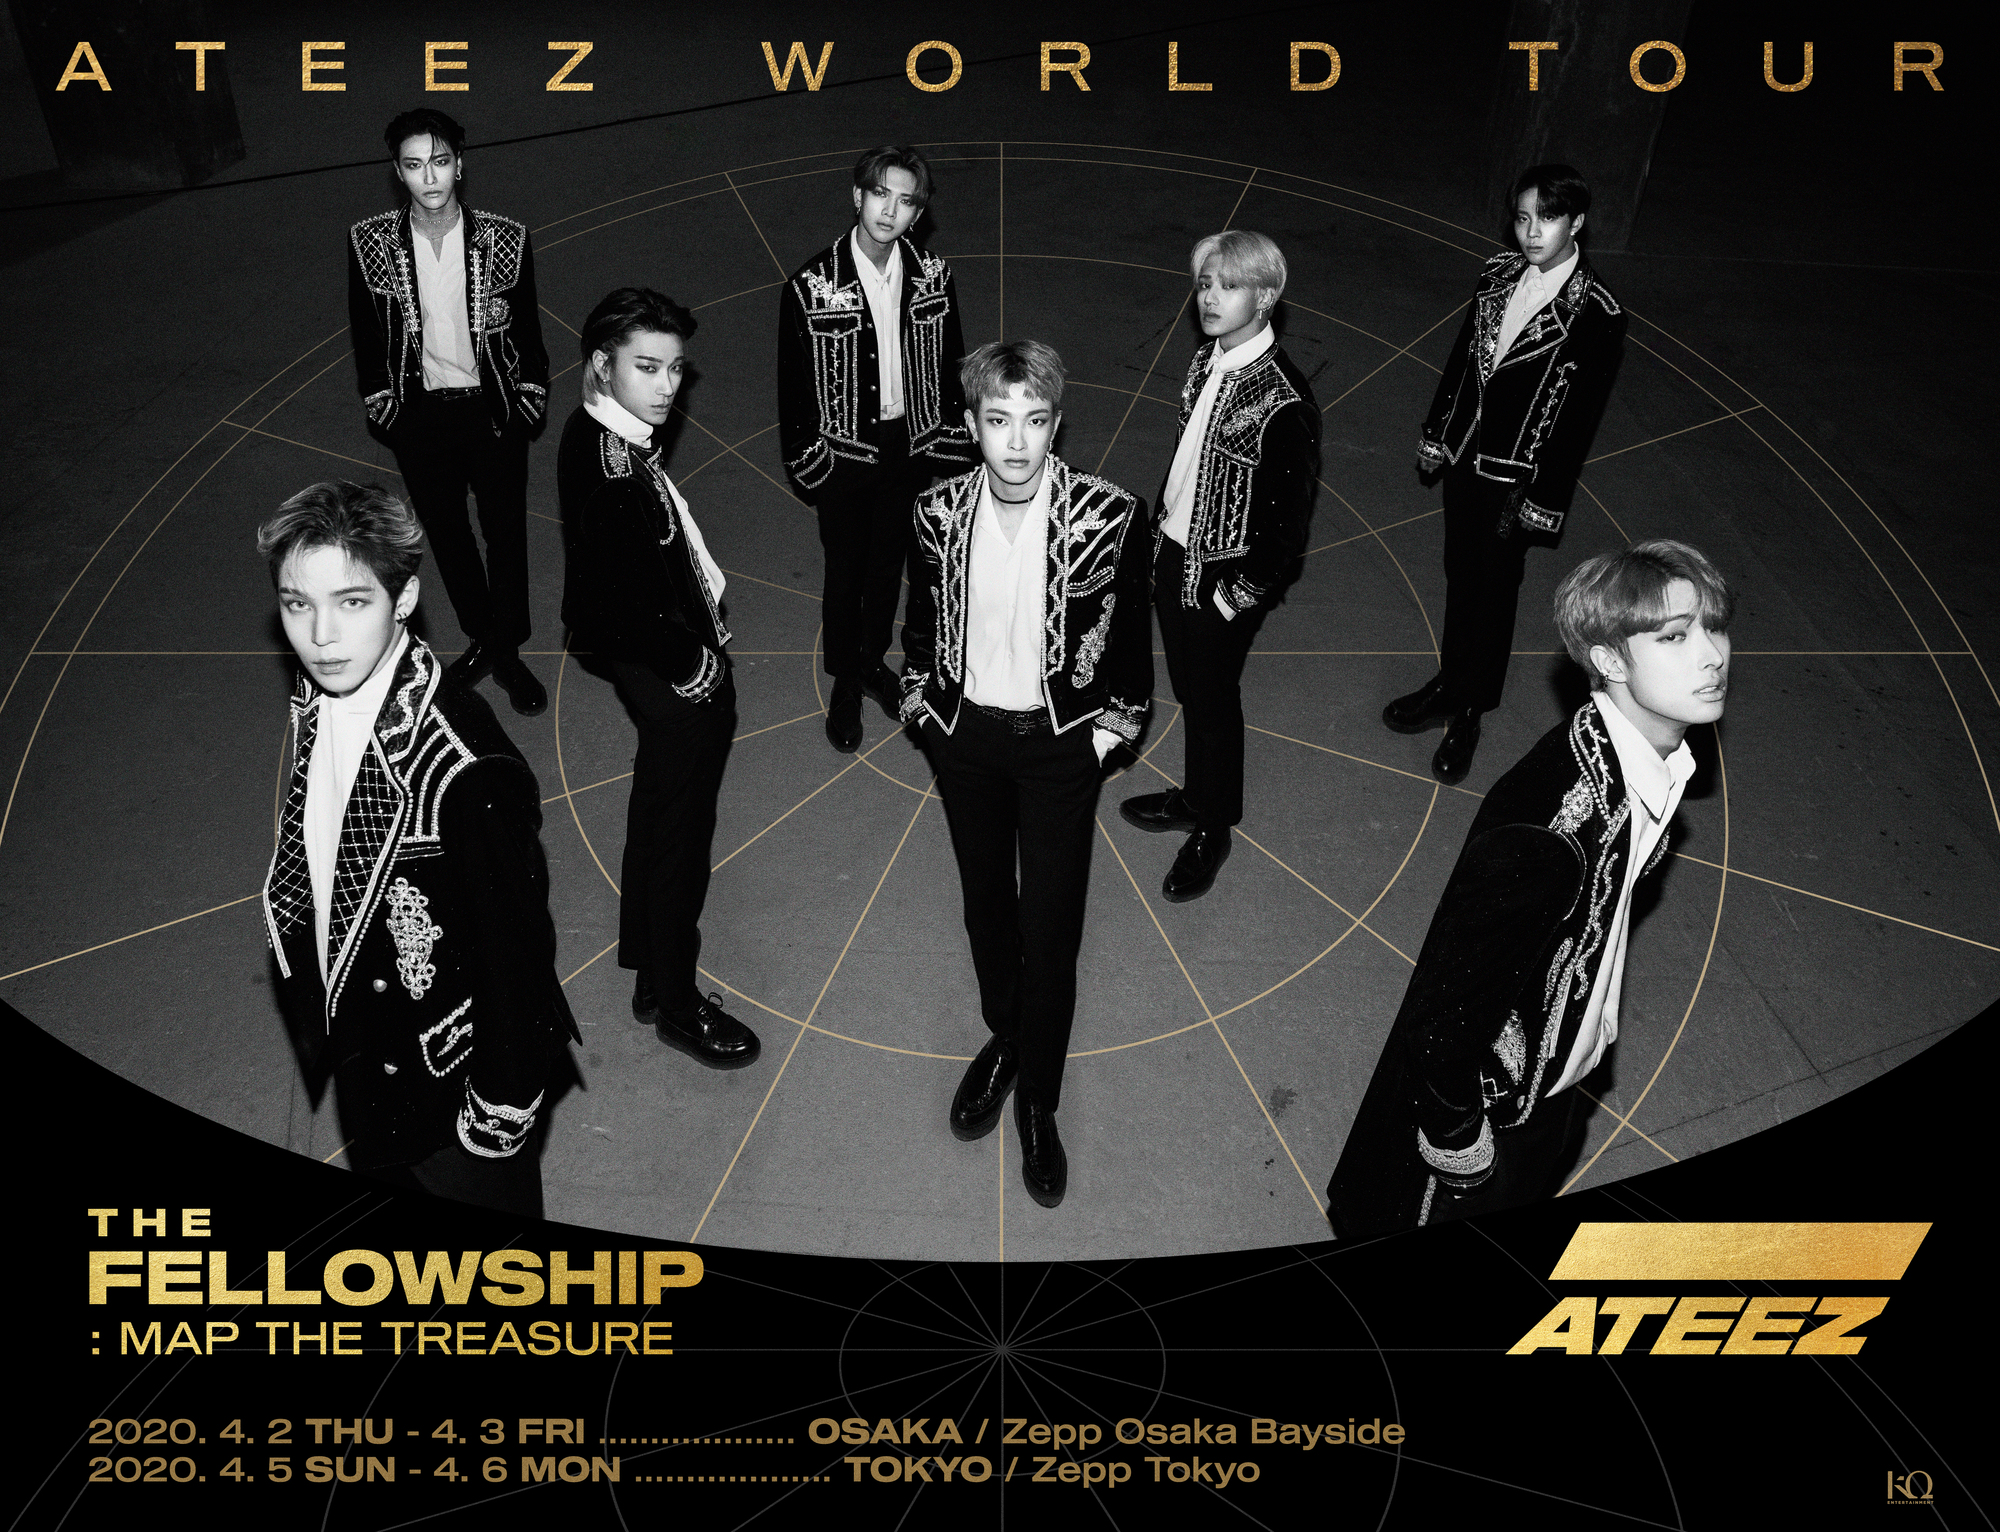 ATEEZ World Tour The Fellowship: Map The Treasure